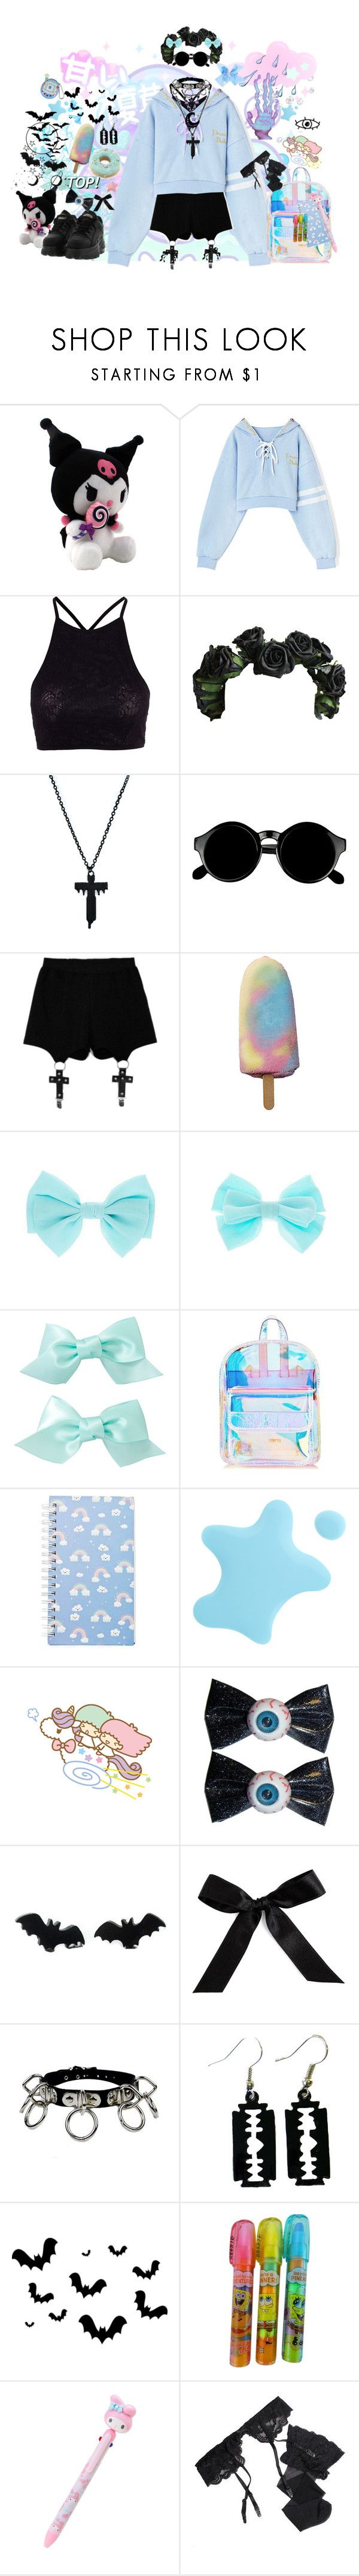 """""""Sky Blue hellhound"""" by secrethunny ❤ liked on Polyvore featuring Y.A.S, Retrò, Chicnova Fashion, John Lewis, Skinnydip, Forever 21, Kreepsville 666, Bocage, Reger by Janet Reger and claire's"""